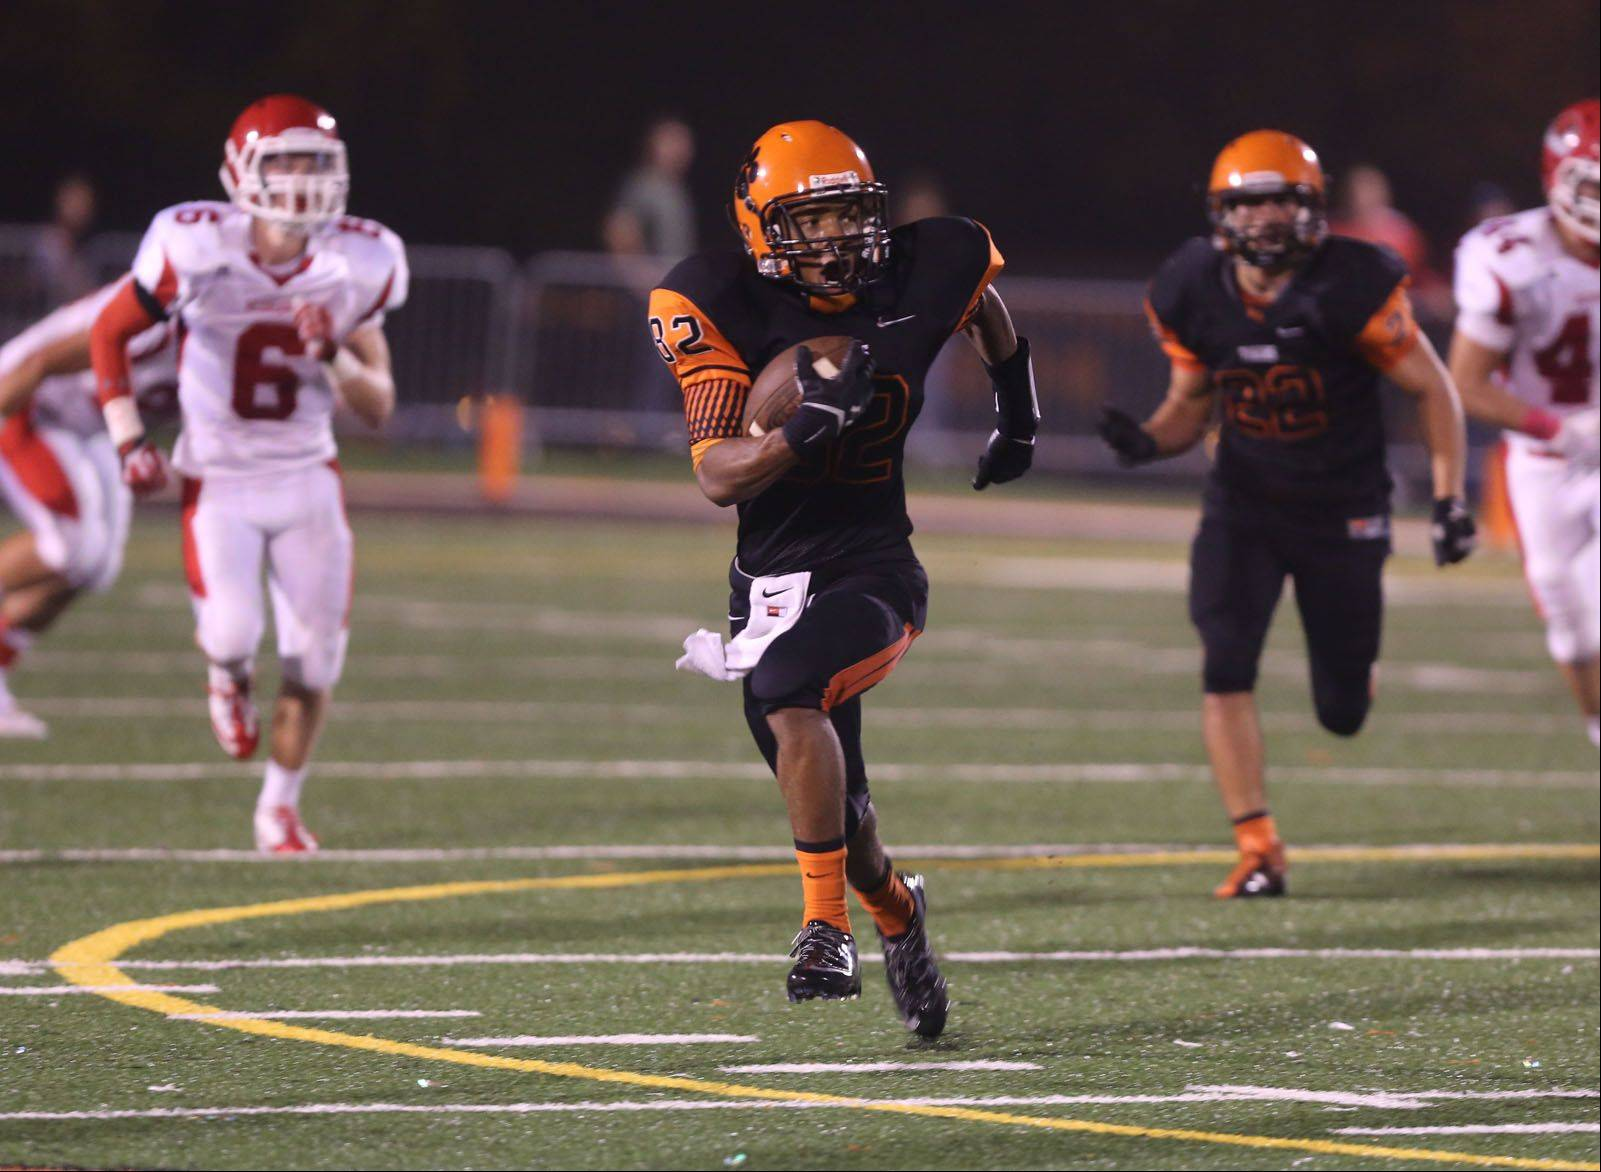 Wheaton Warrenville South's Keishawn Watson returns a punt against Naperville Central.